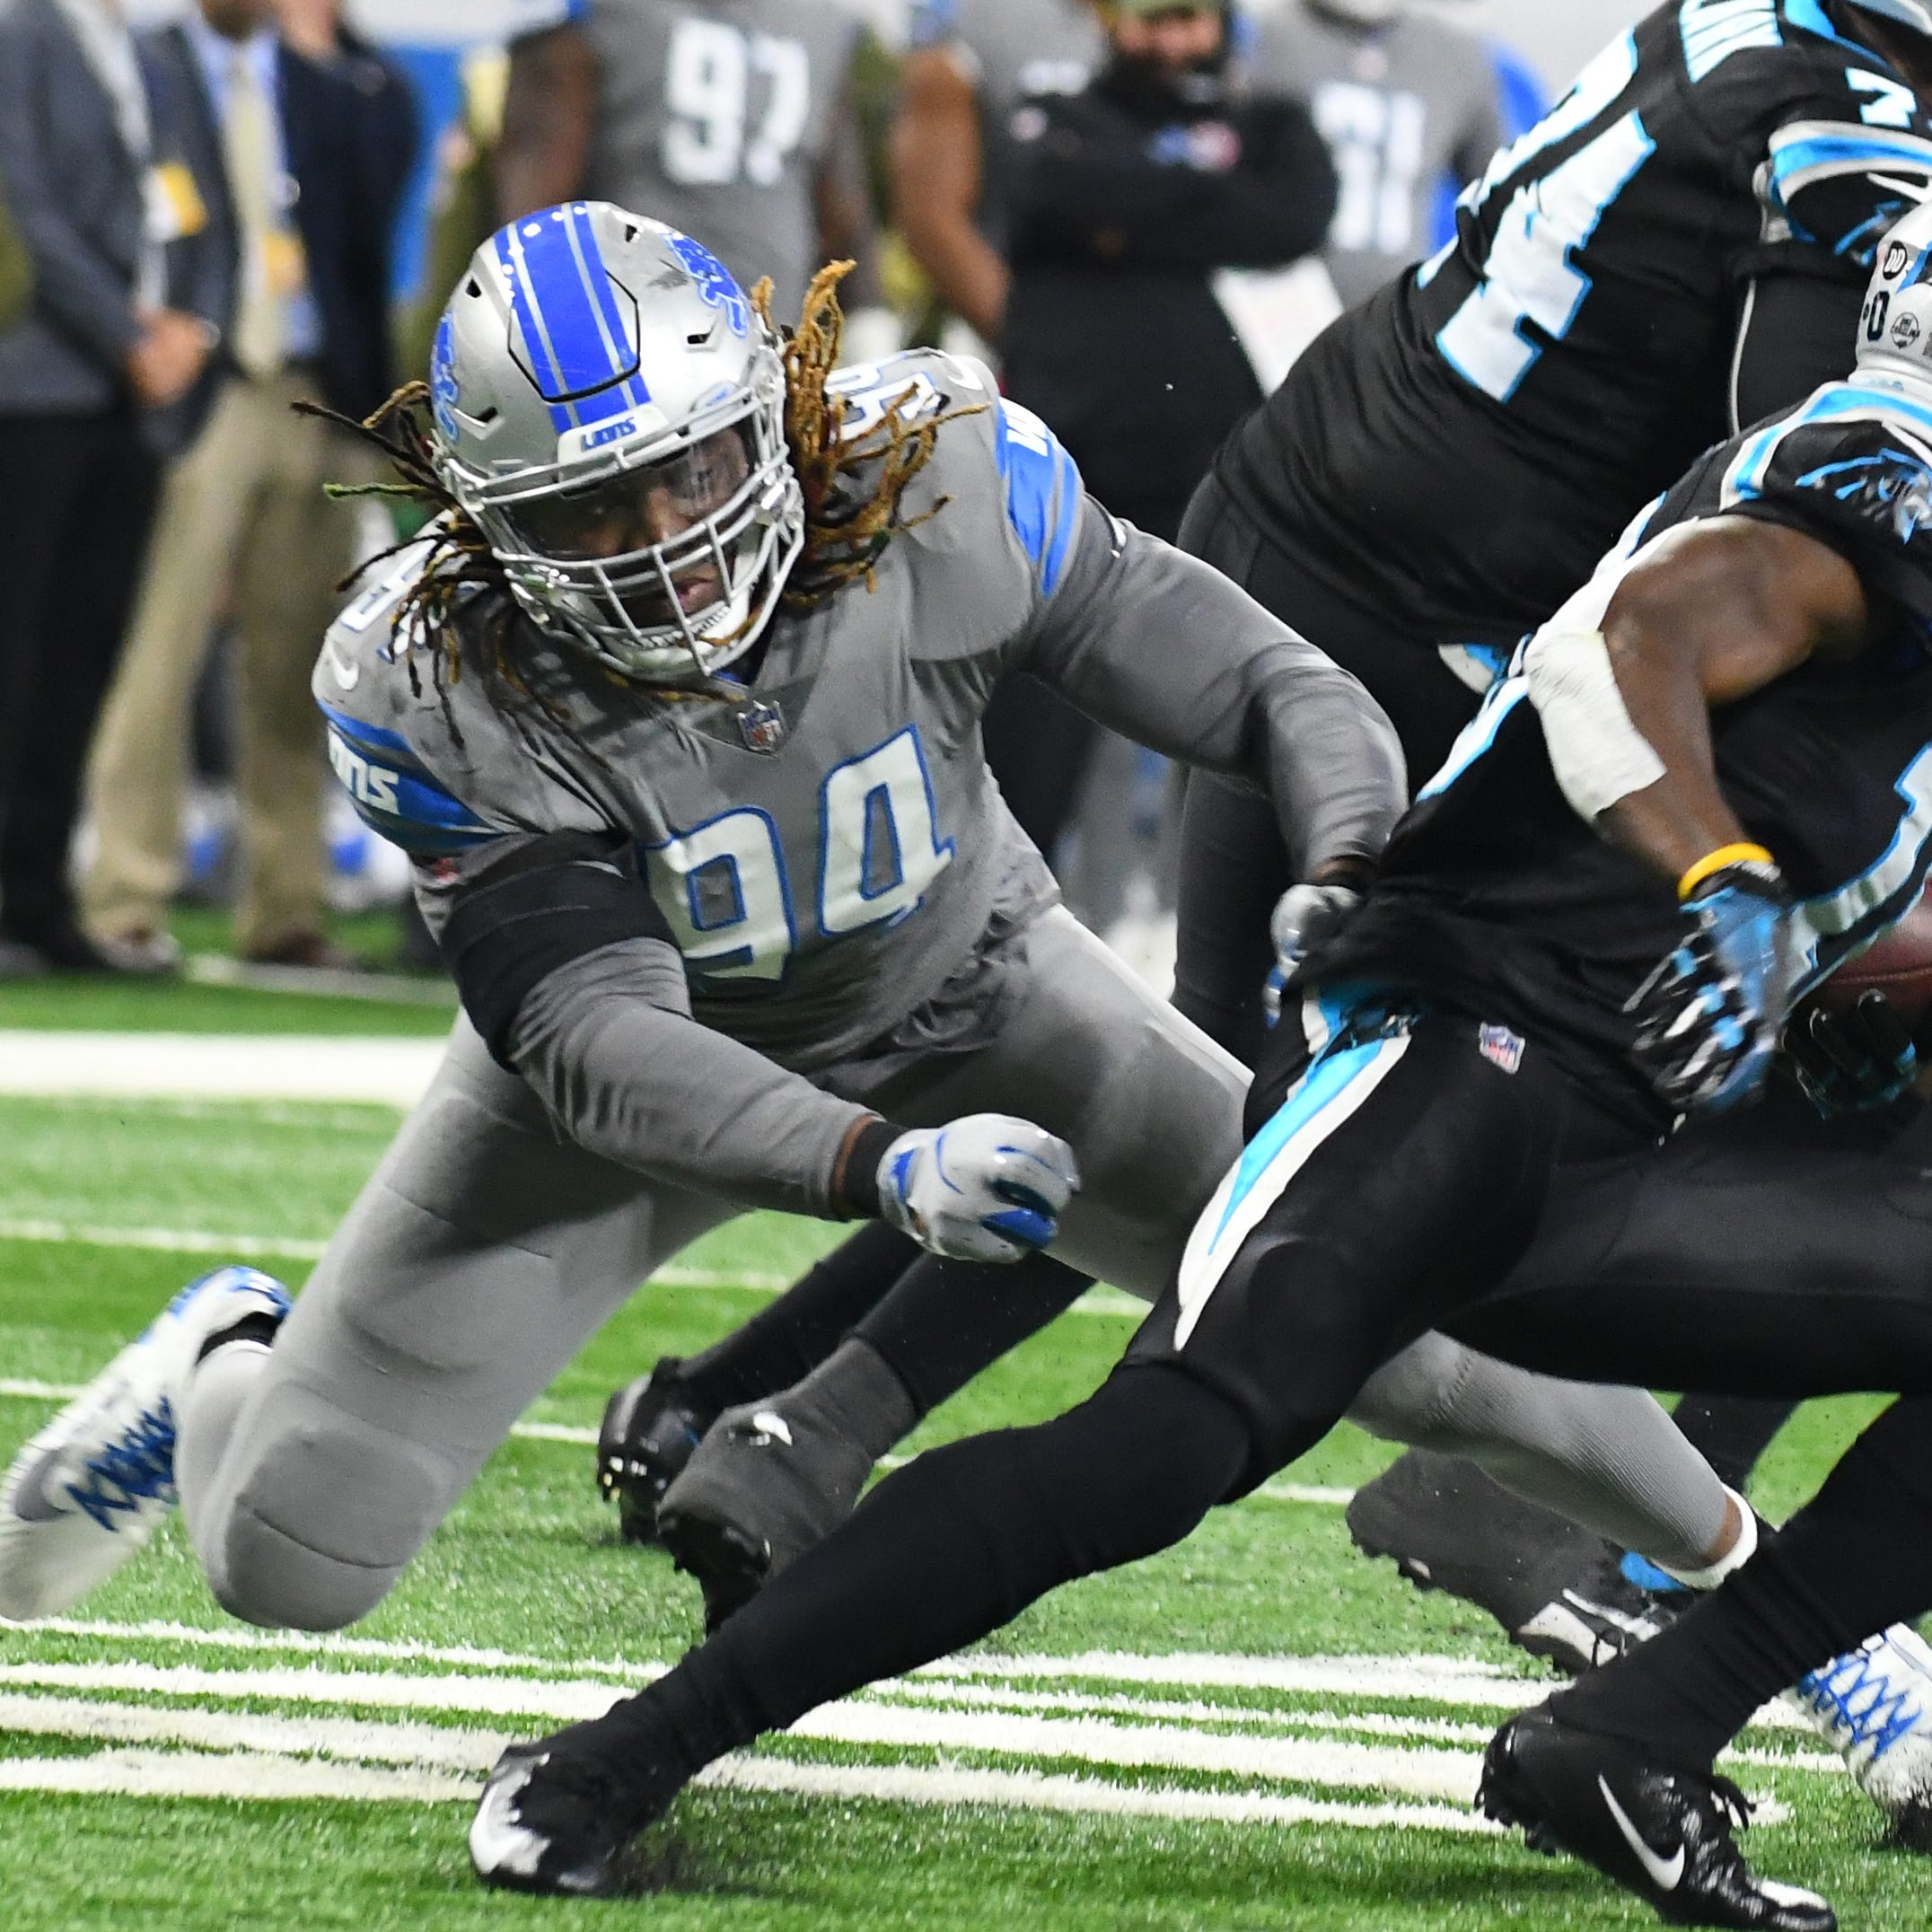 CBS Sports projects ex-Lions Ziggy Ansah to Bills, Ndamukong Suh to Colts